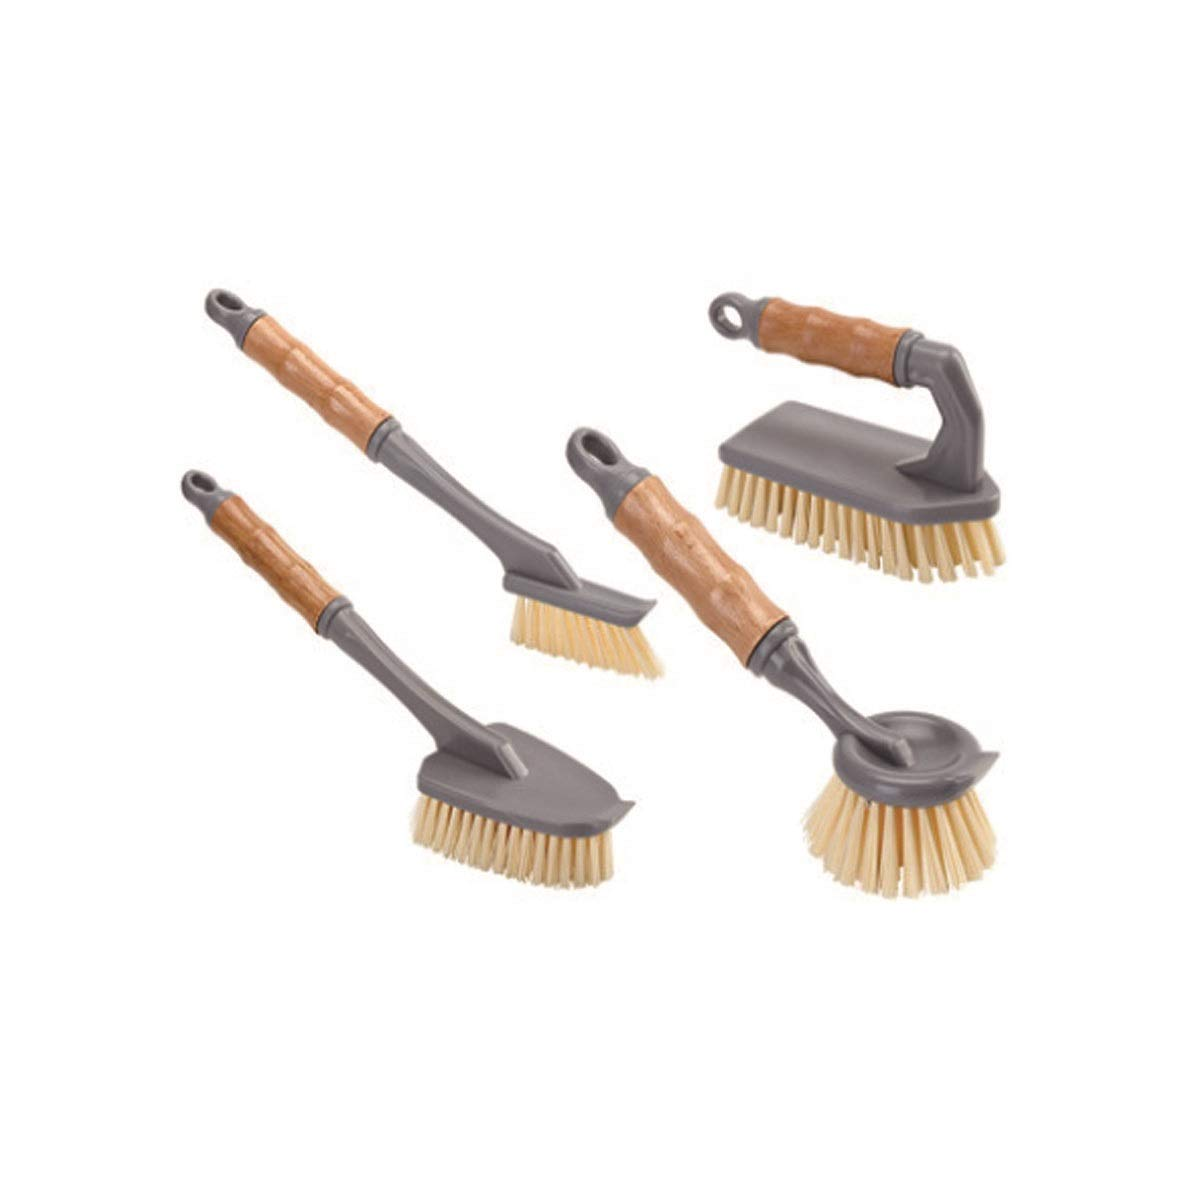 HENGTONGTONGXUN Brush Pot Artifact, Kitchen Supplies, Long Handle to Stain Cleaning Tool, Four-Piece Rugged Scrubber for Quick and Easy Washing (Color : Gray) by HENGTONGTONGXUN